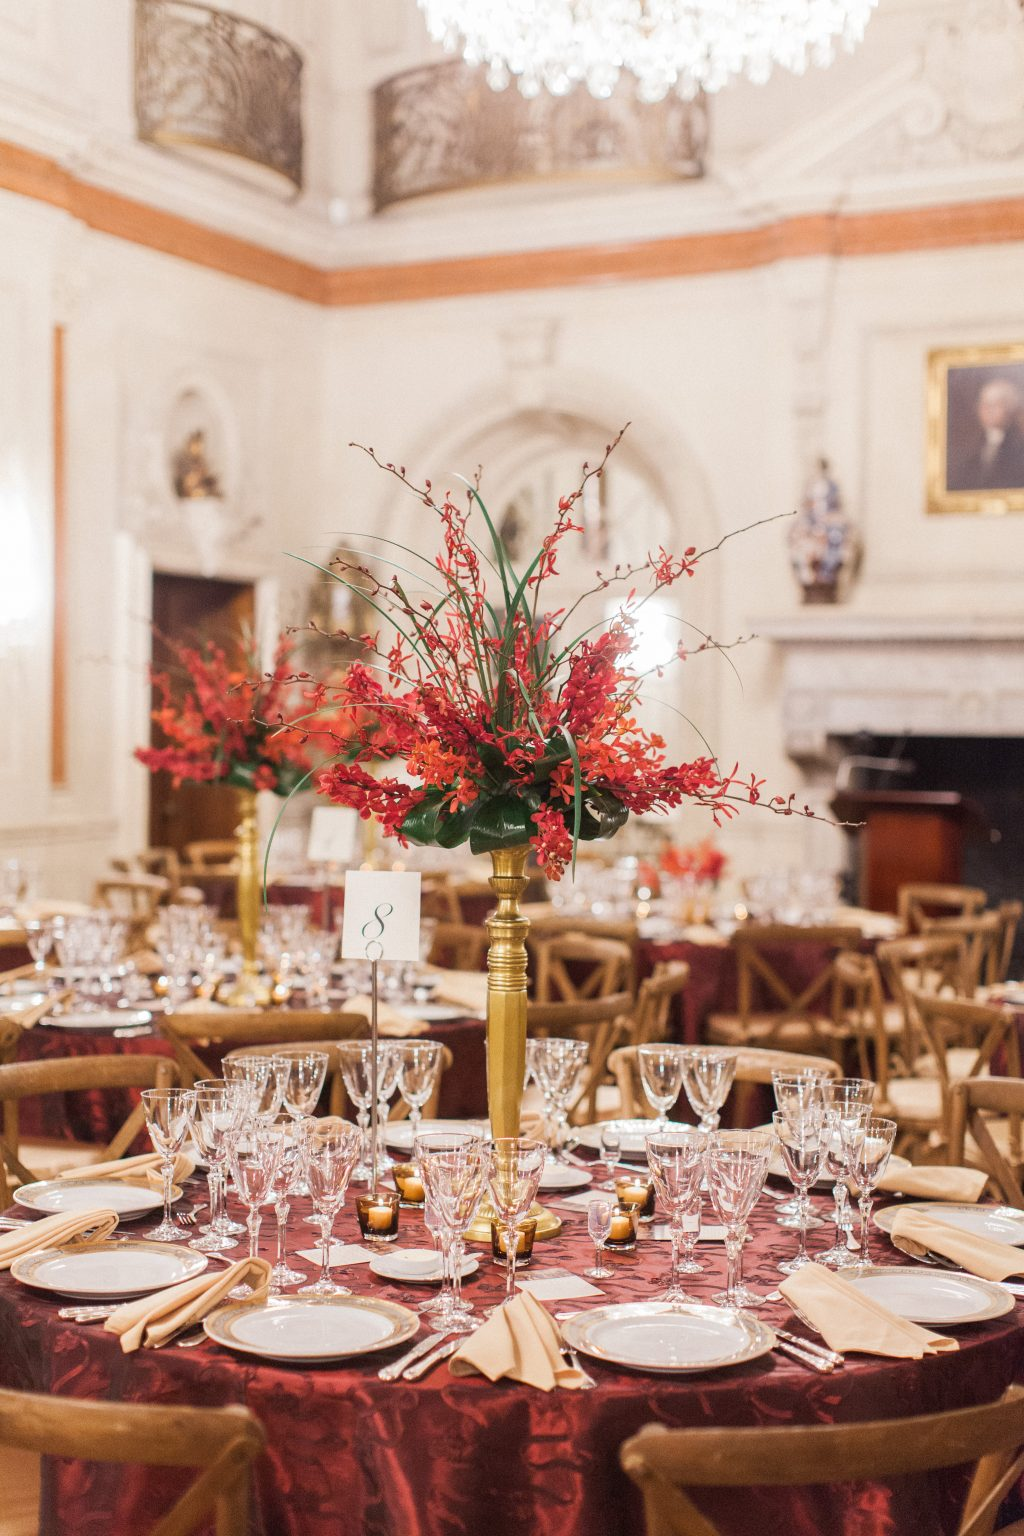 Dinner in the Ballroom. Photo by Jeremy Chou.